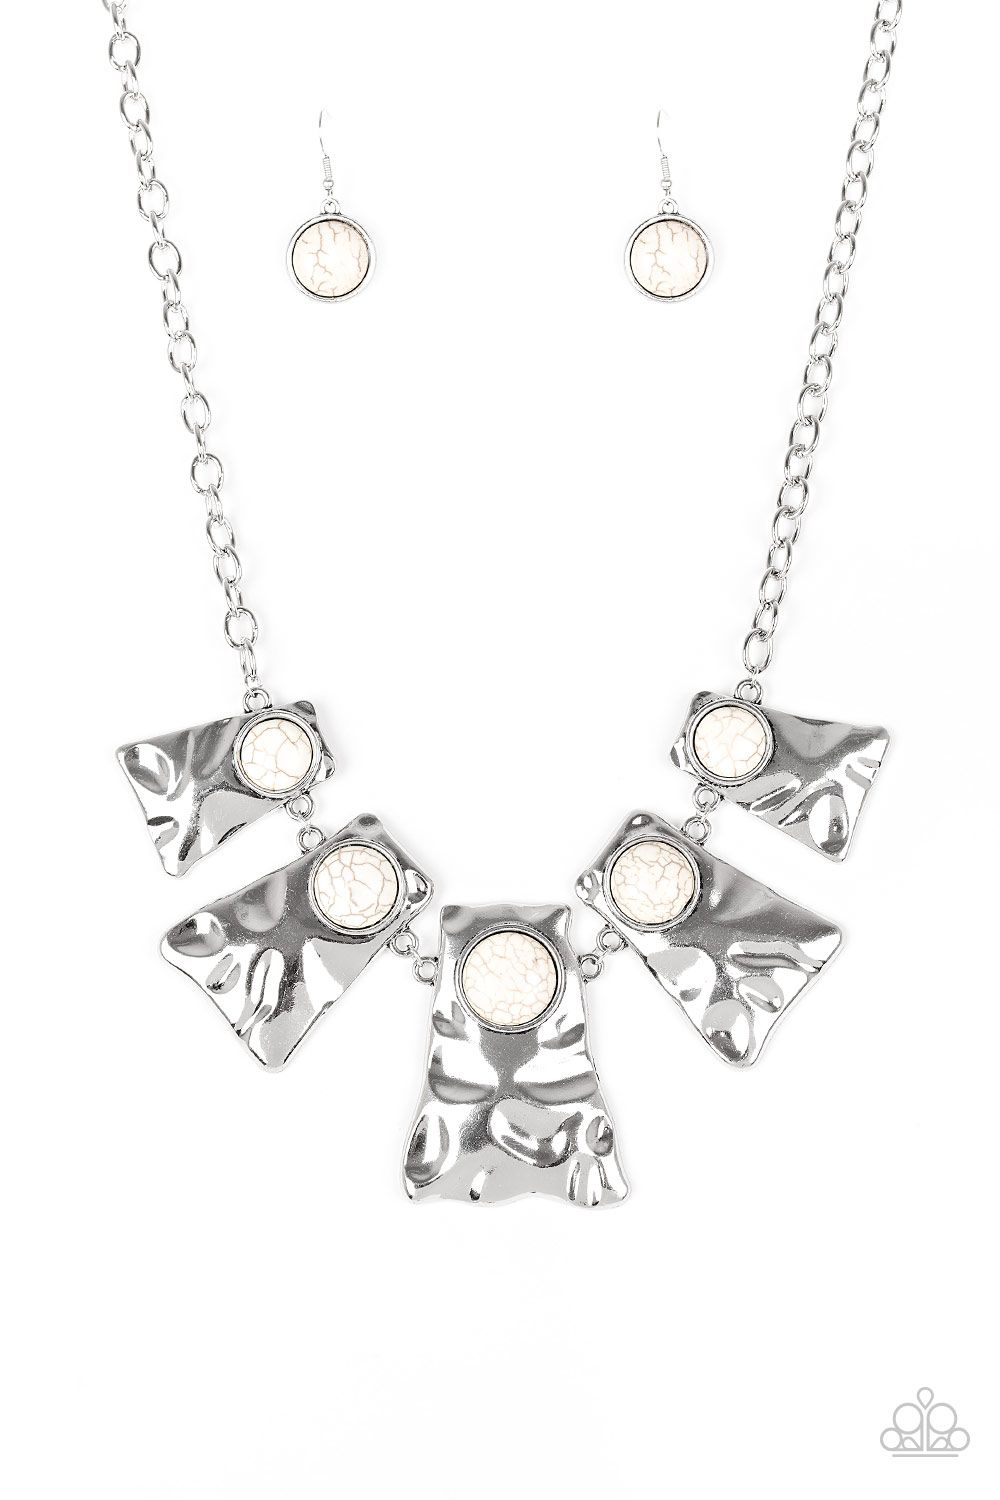 Cougar white necklace pinterest